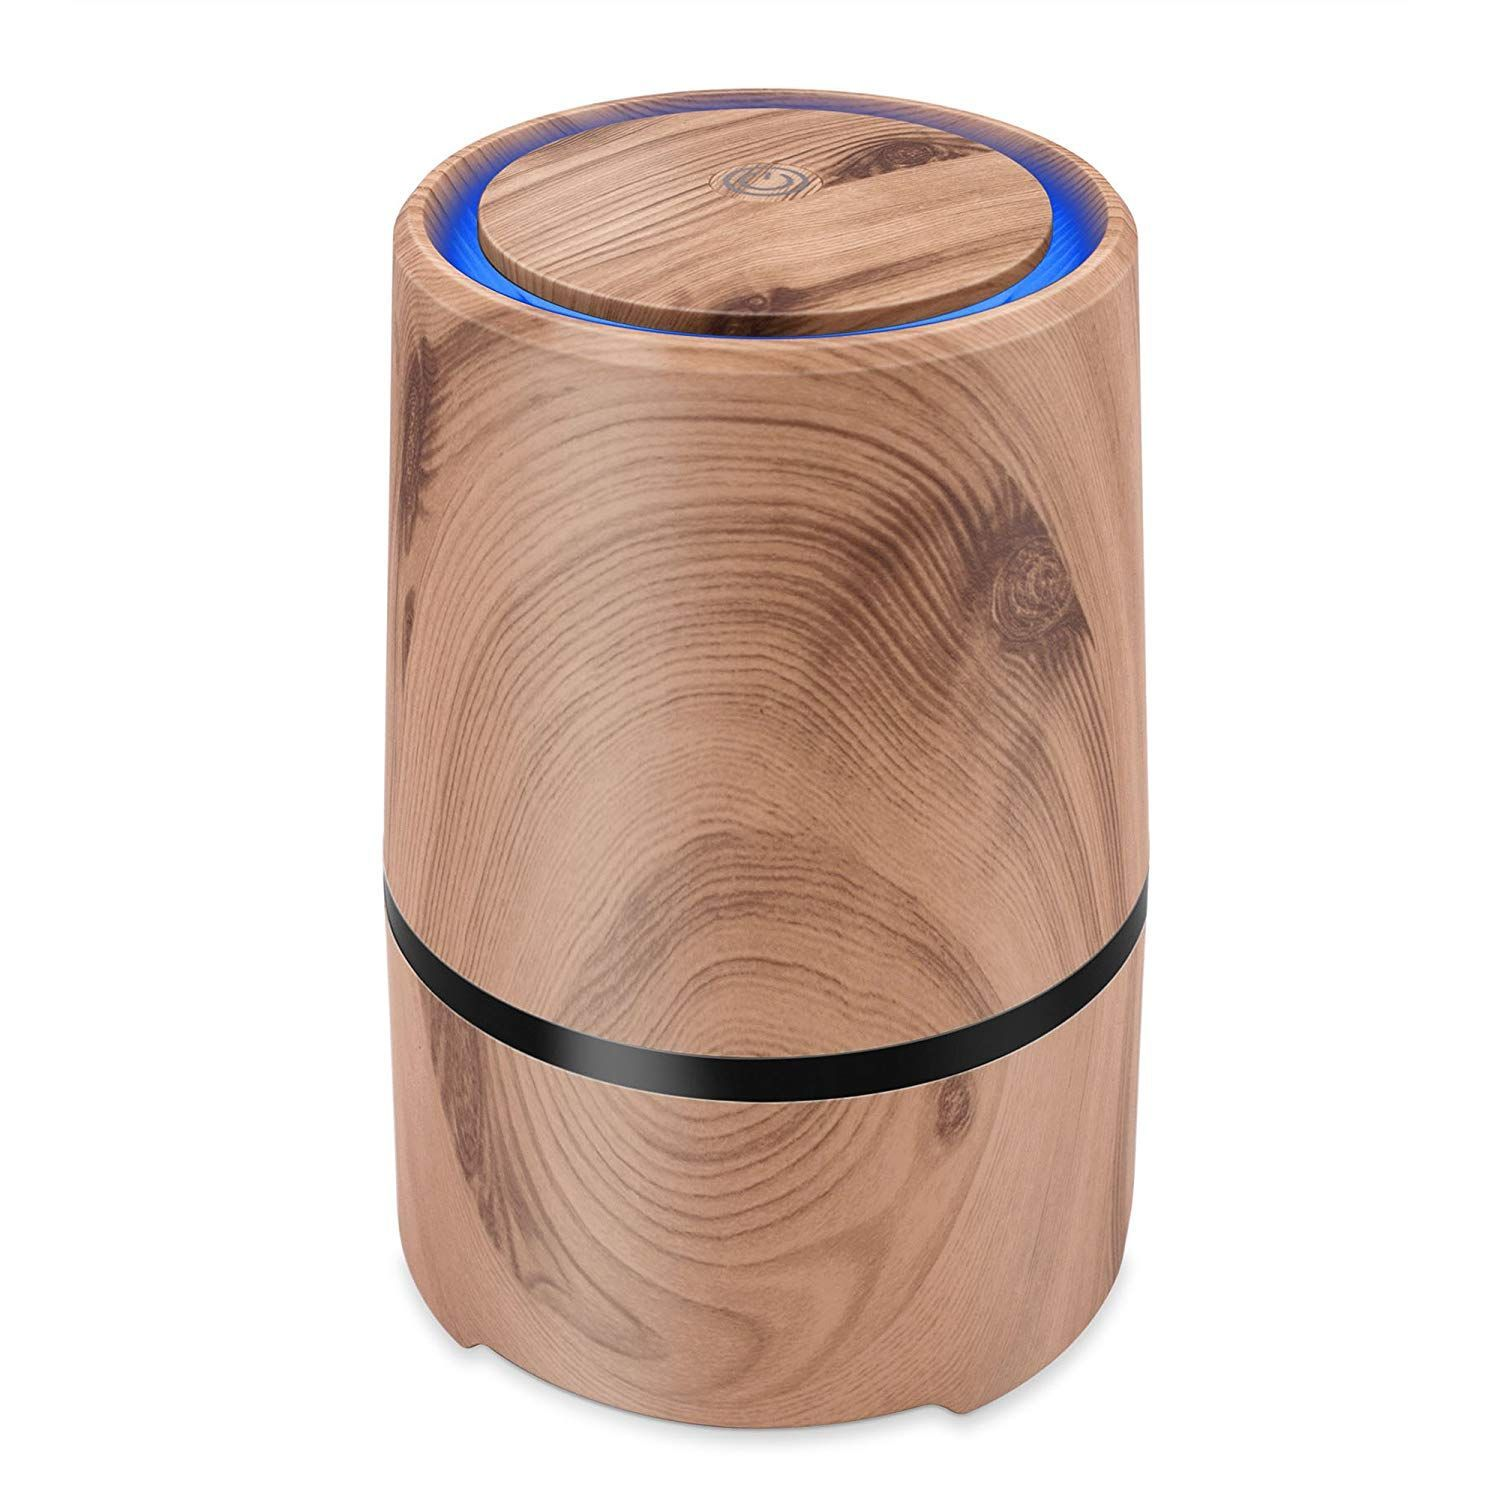 Air Purifiers That Double As Chic Home Decor Pieces